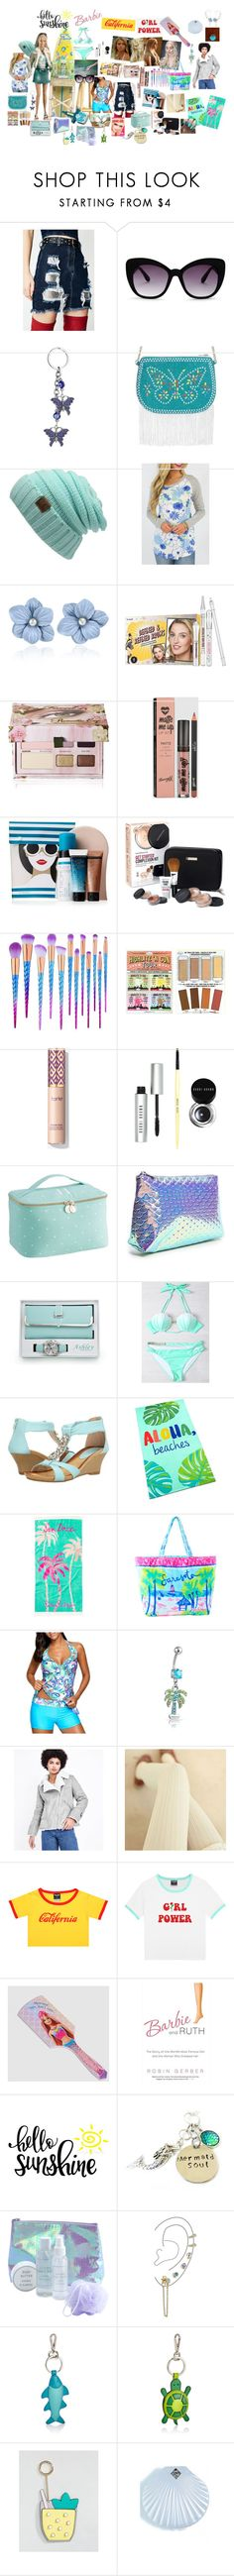 """Hello Sunshine Barbie Cali Girl Power"" by aquamimi on Polyvore featuring Hera Knit, H2O+, Perverse, WithChic, Benefit, Too Faced Cosmetics, St. Tropez, Bare Escentuals, TheBalm and Bobbi Brown Cosmetics"